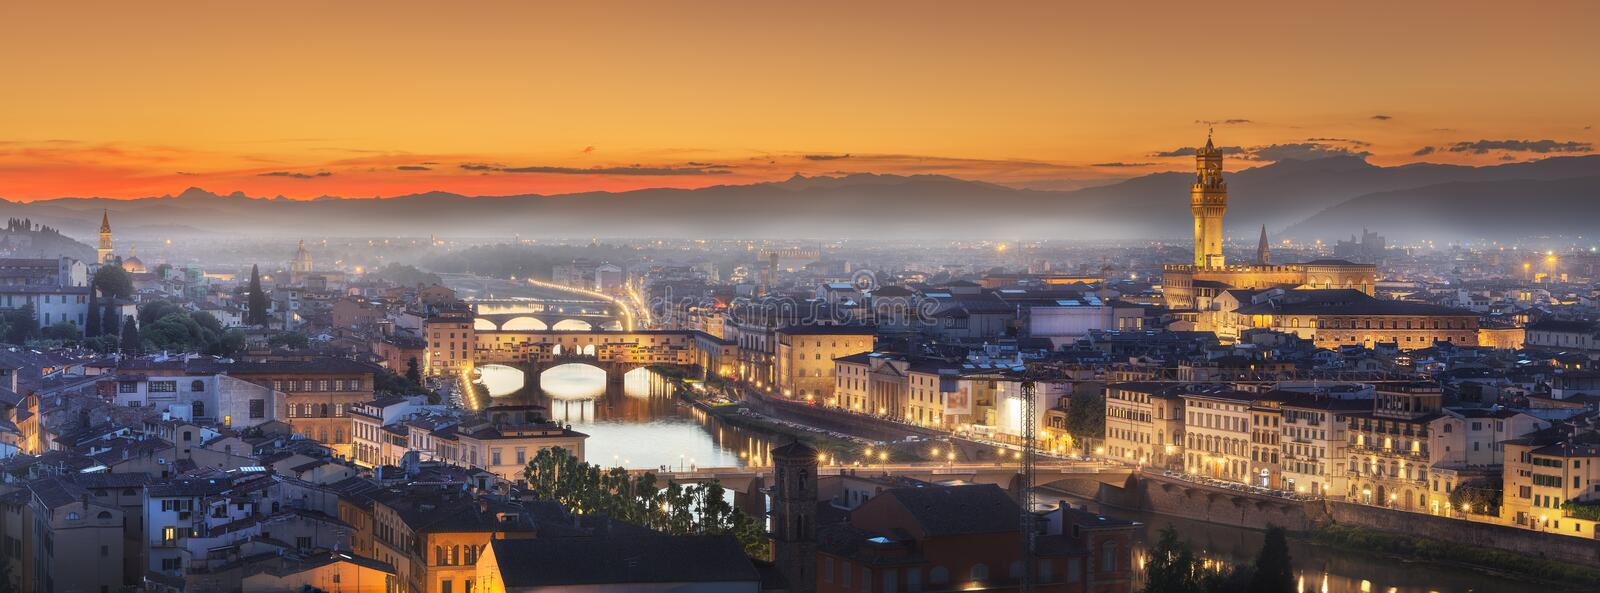 Arno River and bridges at sunset Florence, Italy royalty free stock images